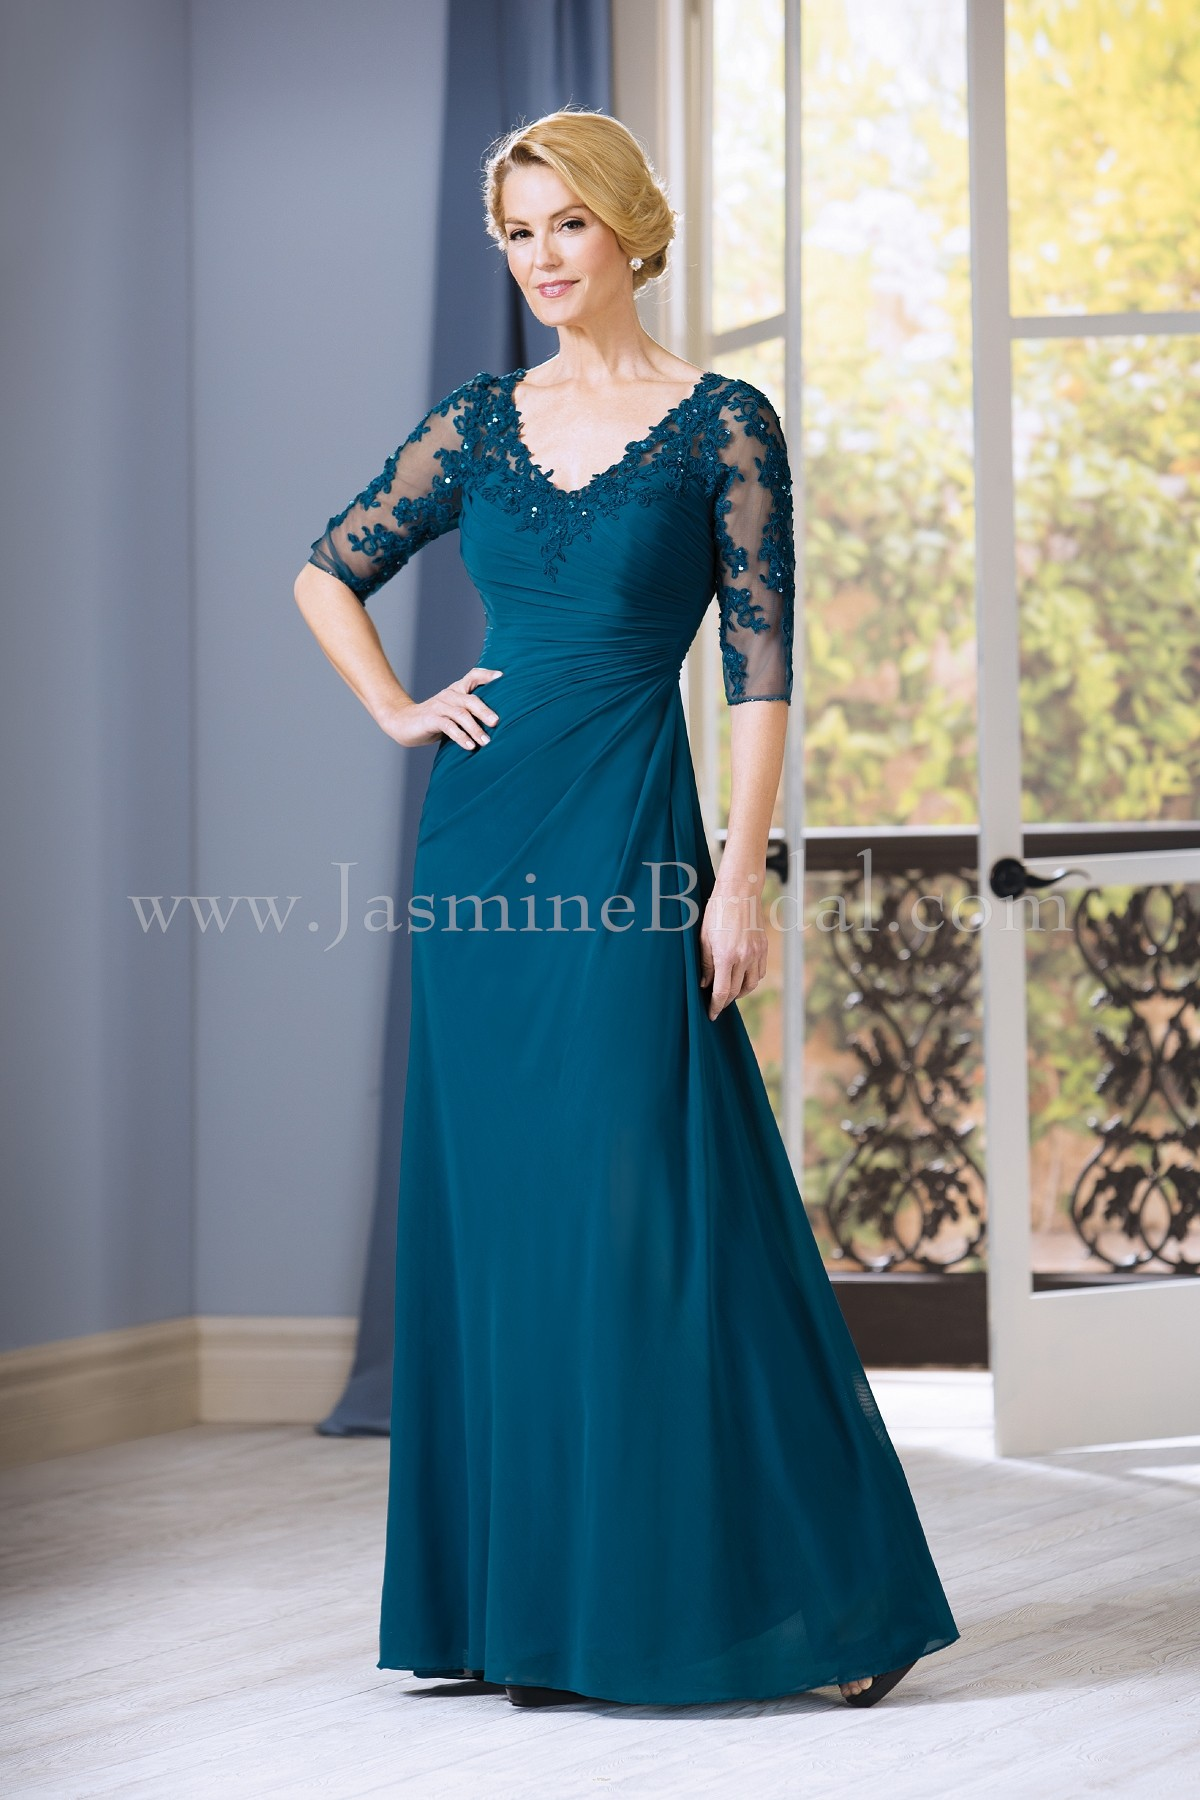 Beautiful Western Style Mother Of The Bride Dresses Vignette - All ...